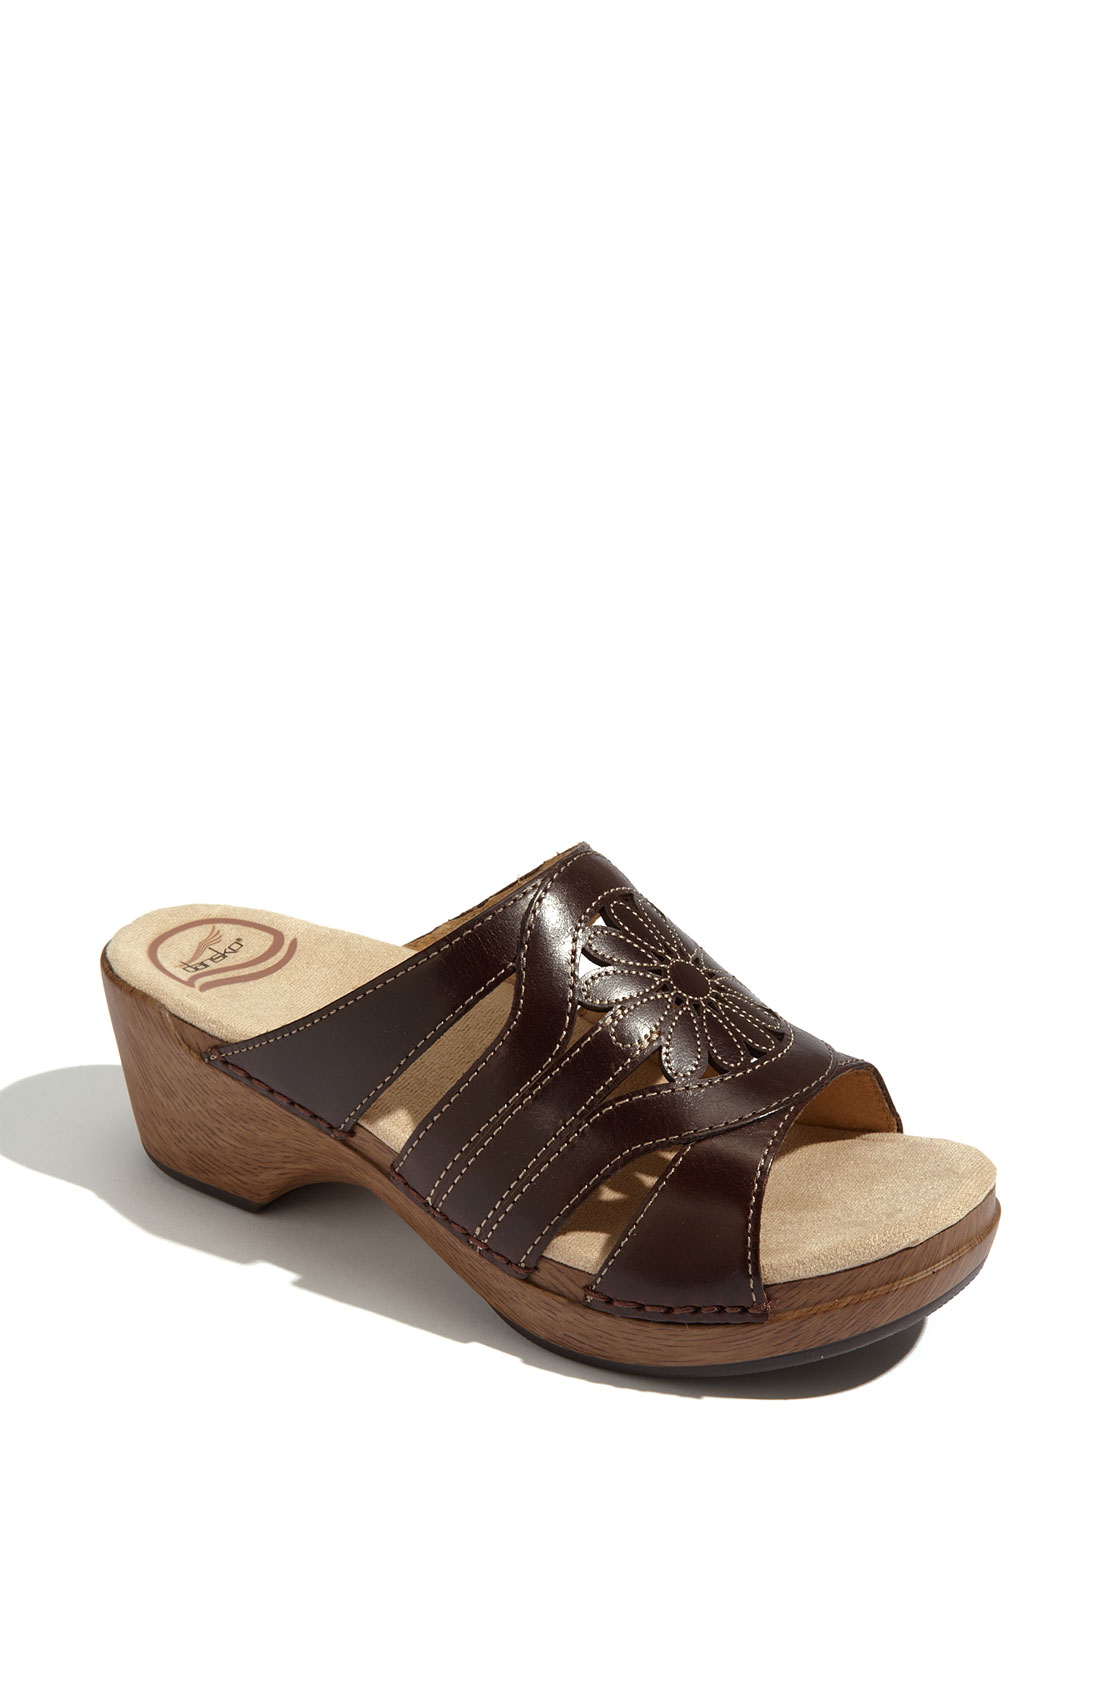 Nordstrom Shoes Sale Womens